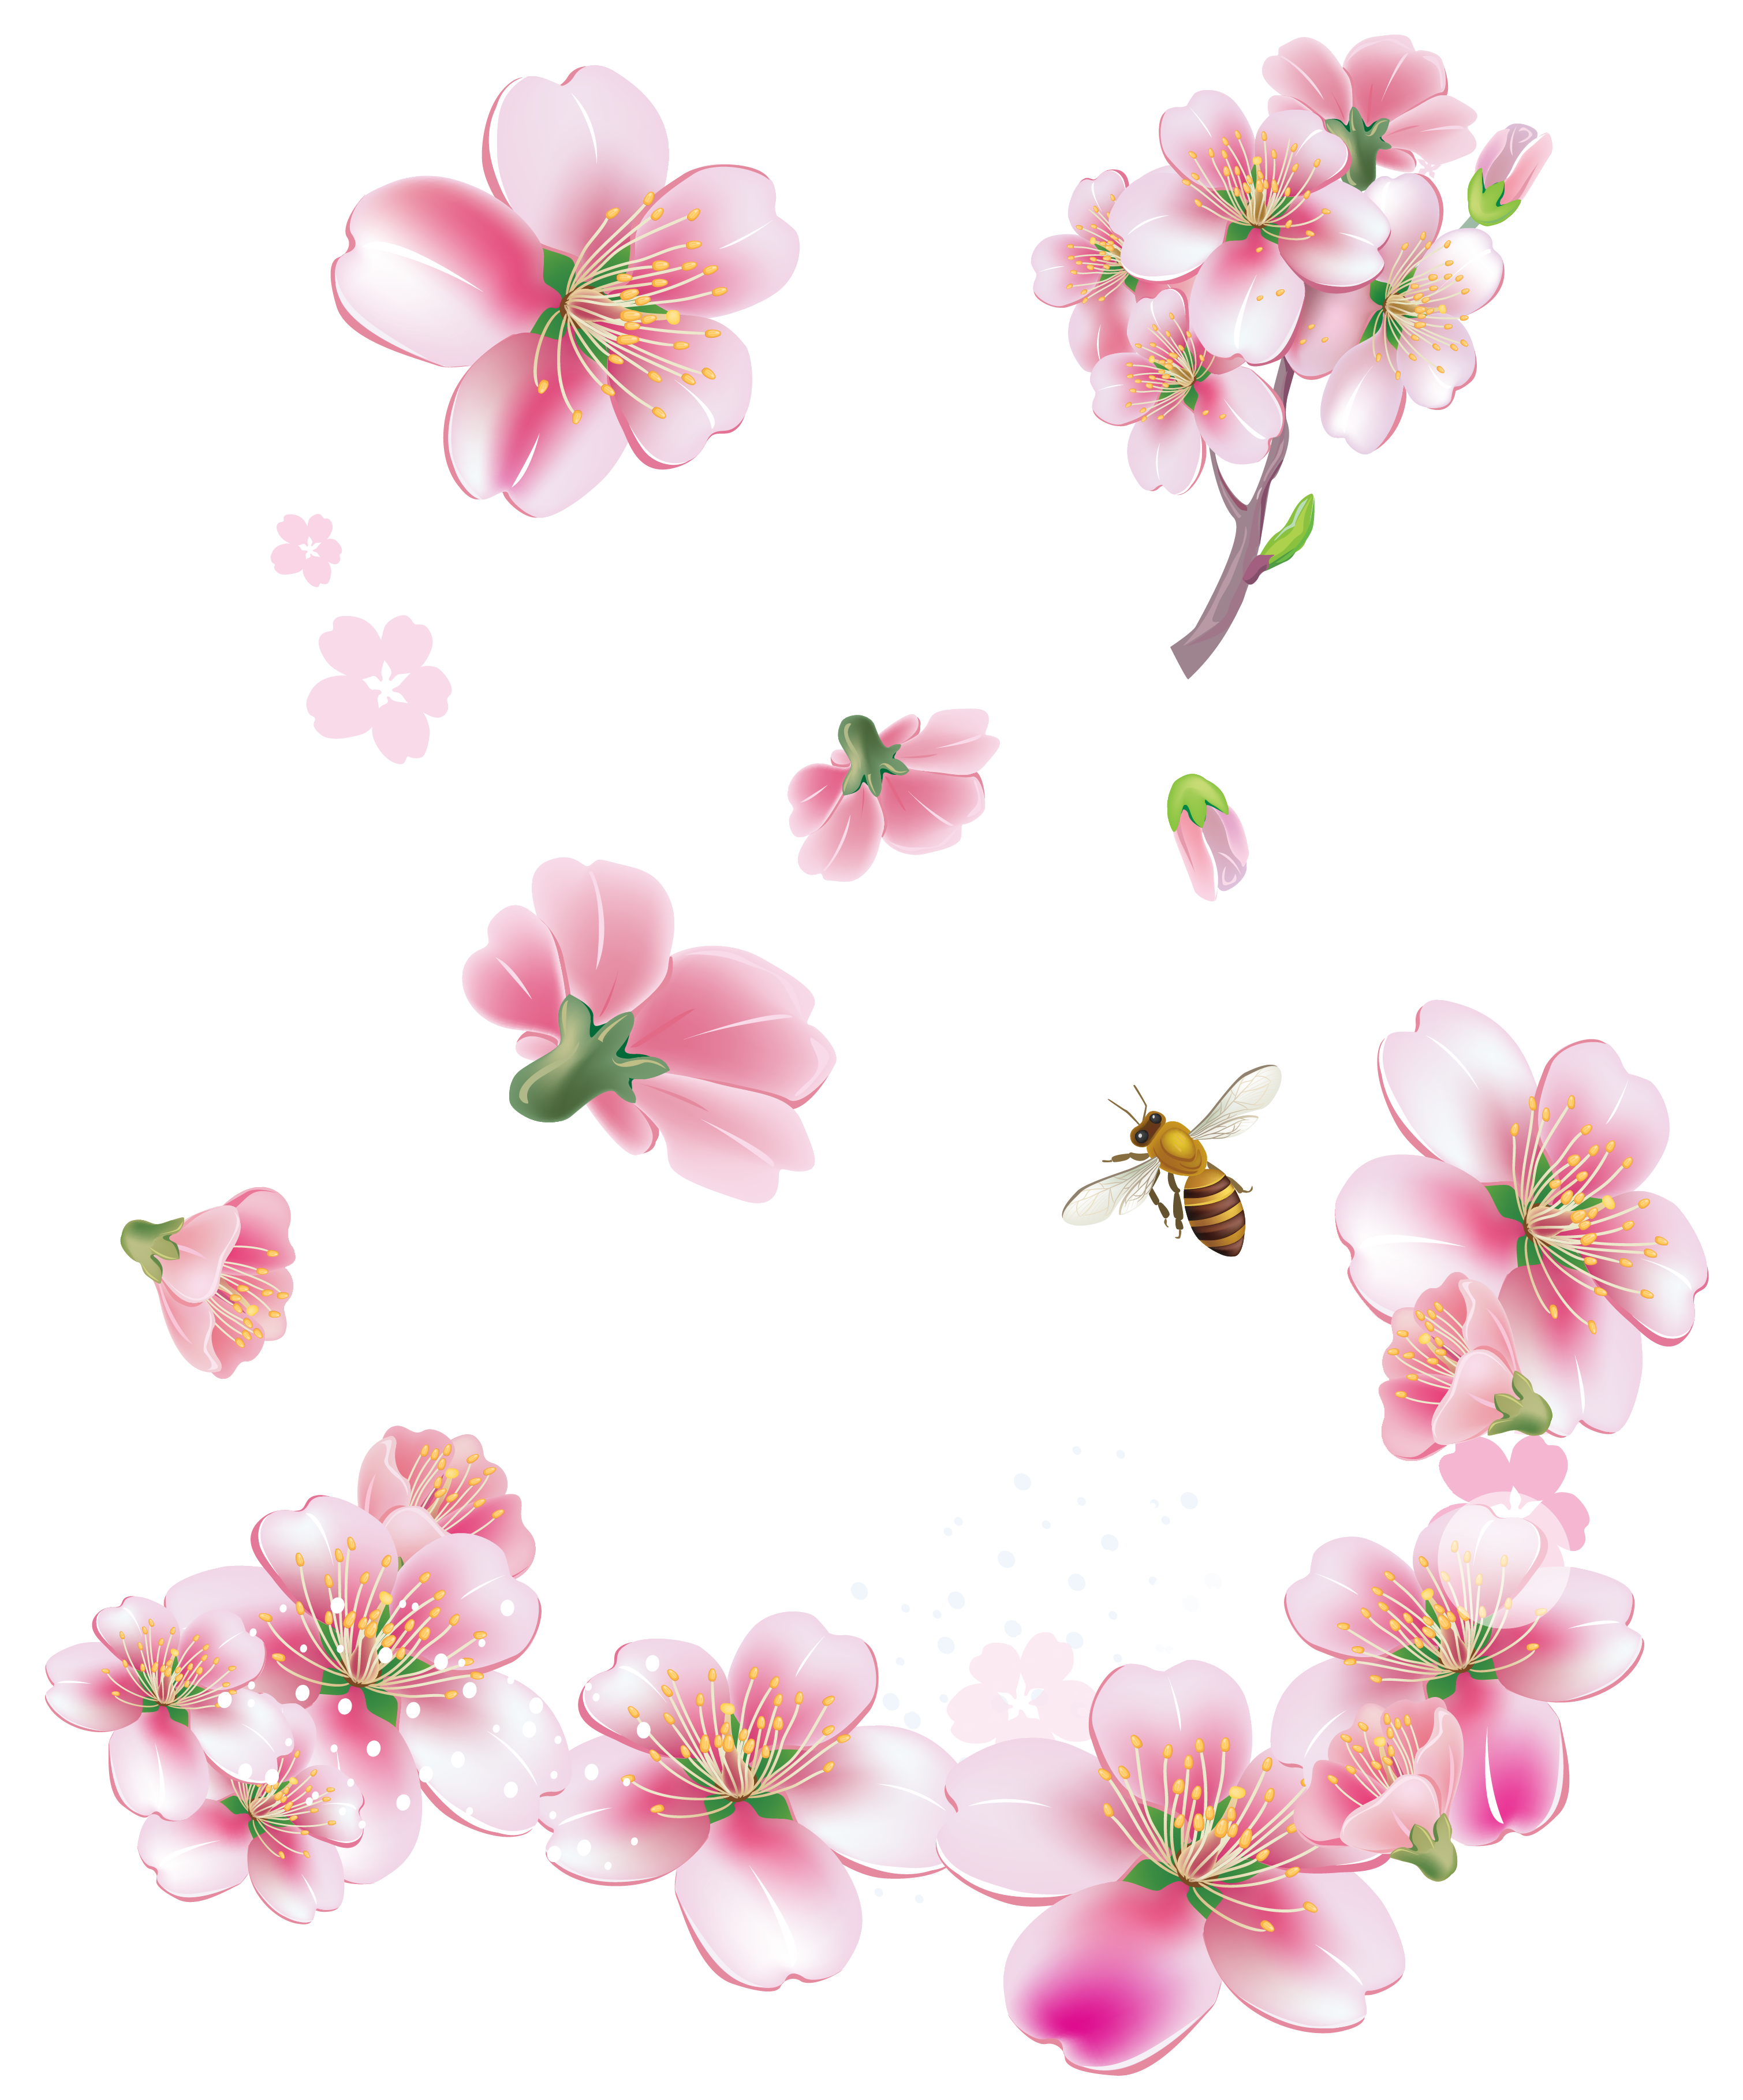 November flower clipart freeuse stock Image - Spring Pink Trees Flowers PNG Clipart.png | Animal Jam Clans ... freeuse stock